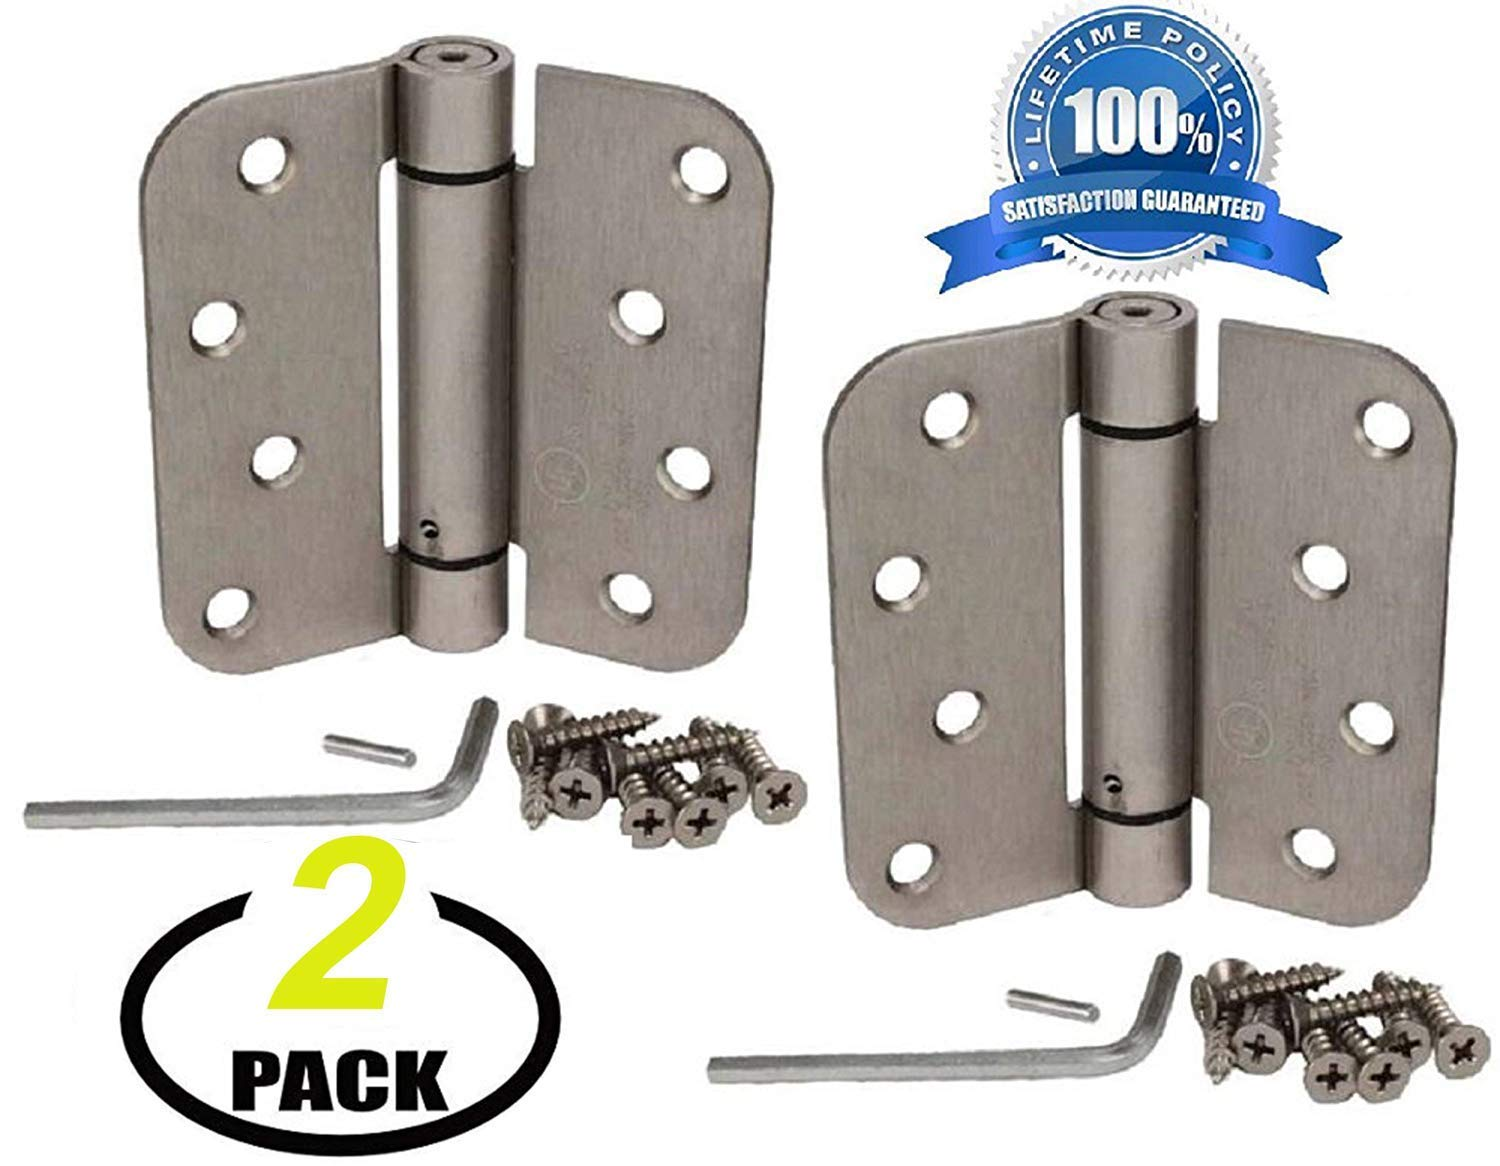 Nuk3y Commercial Grade Heavy Duty 2 Pack UL Rated 4 x 4 Spring Hinge 5//8 Radius Oil Rubbed Bronze